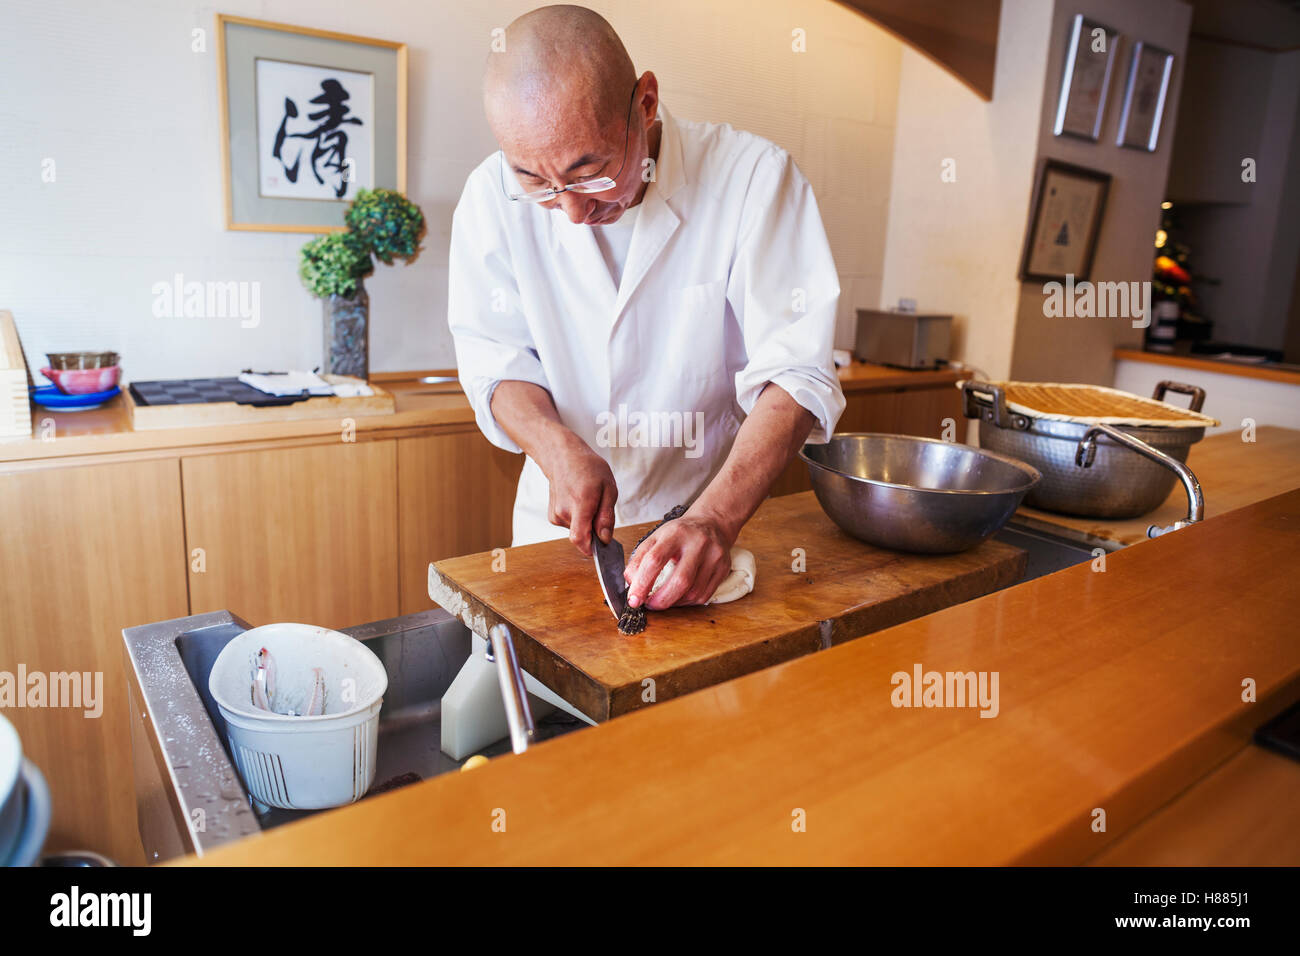 A chef working in a small commercial kitchen, an itamae or master chef slicing fish with a large knife for making - Stock Image